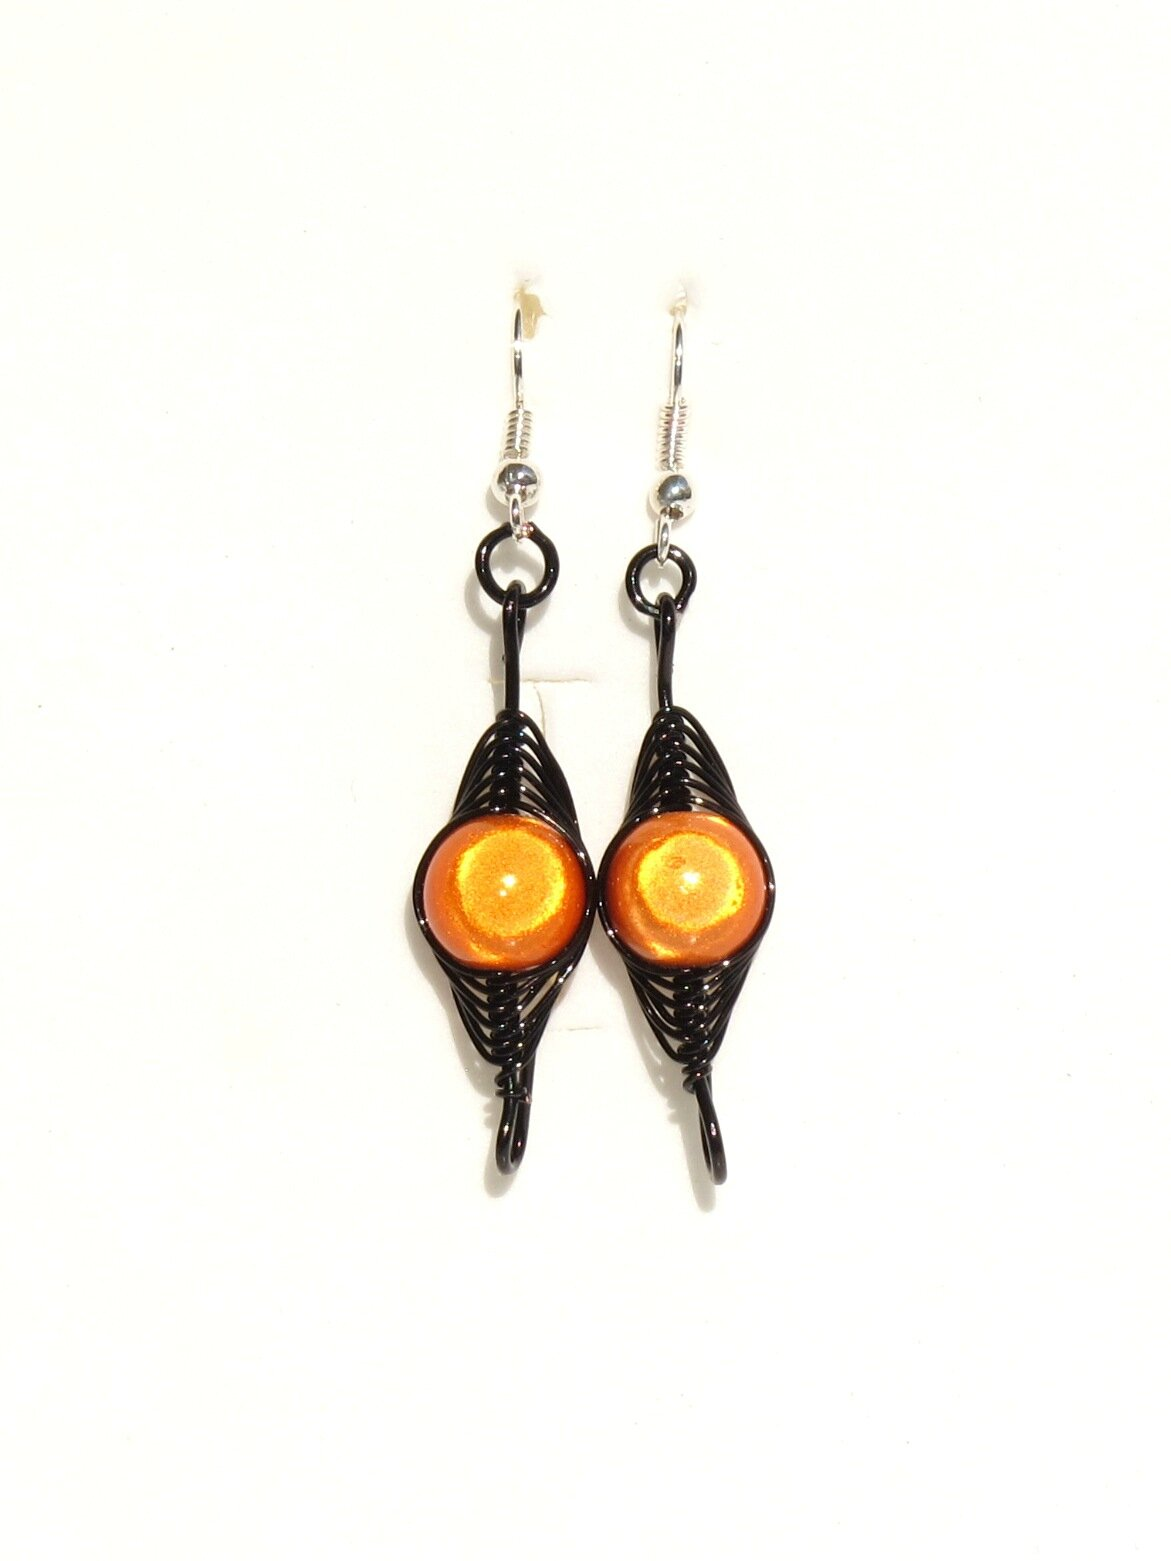 boucles d'oreilles wire noir perles orange face